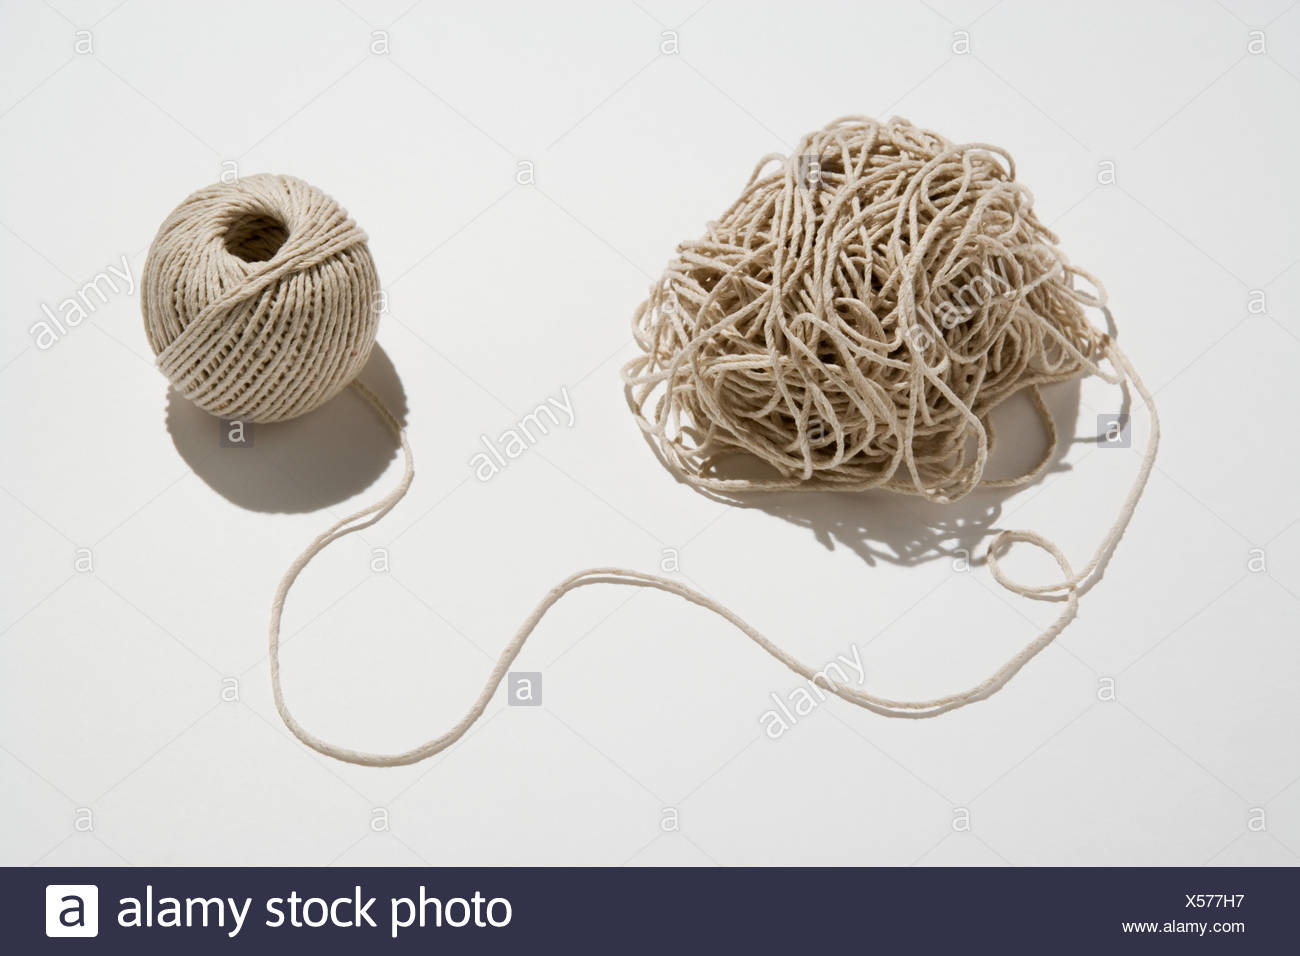 Ball of twine unraveling - Stock Image